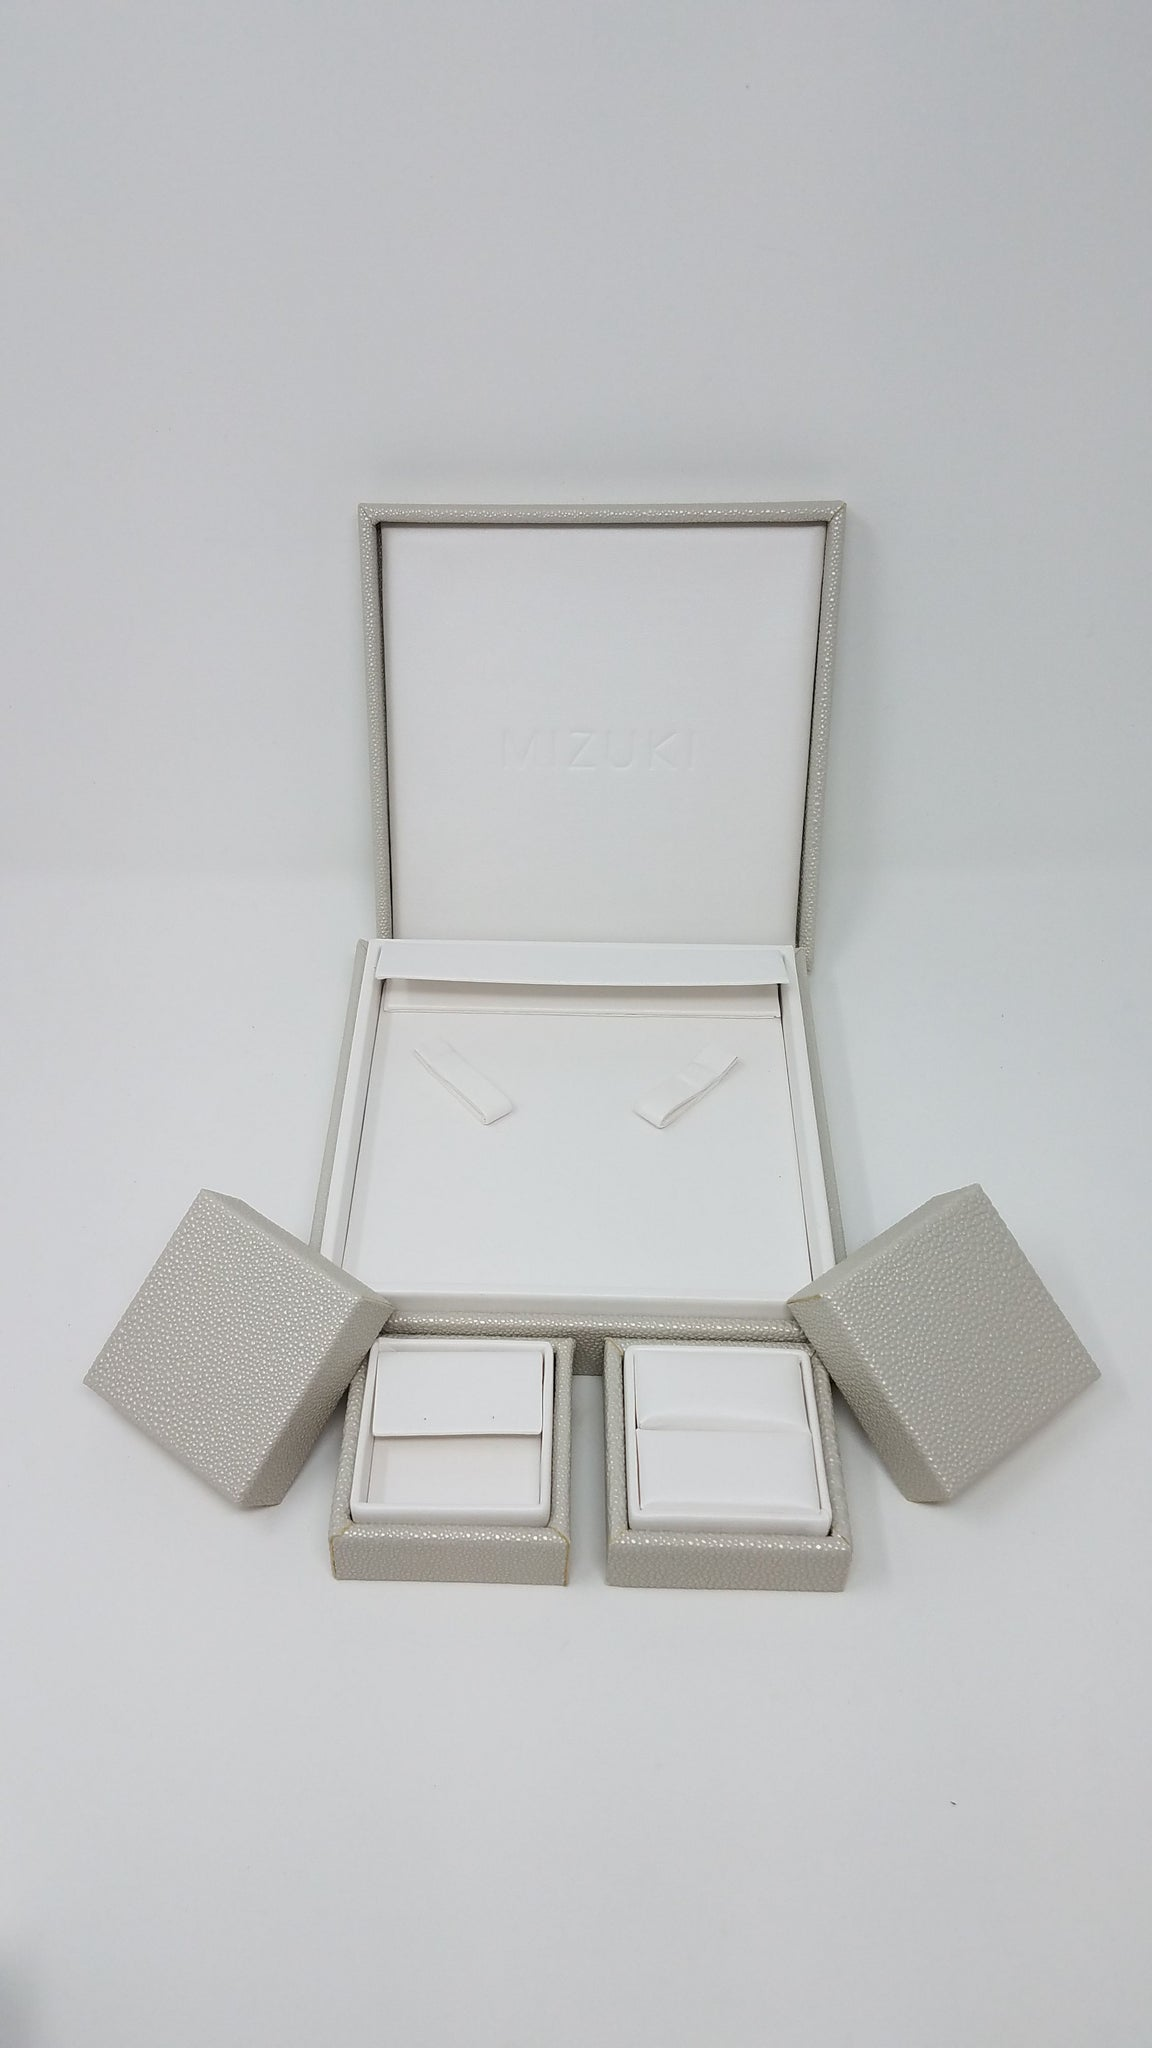 LS60C - SMALL LIFT OFF JEWELRY BOX WITH CUSHION TOP